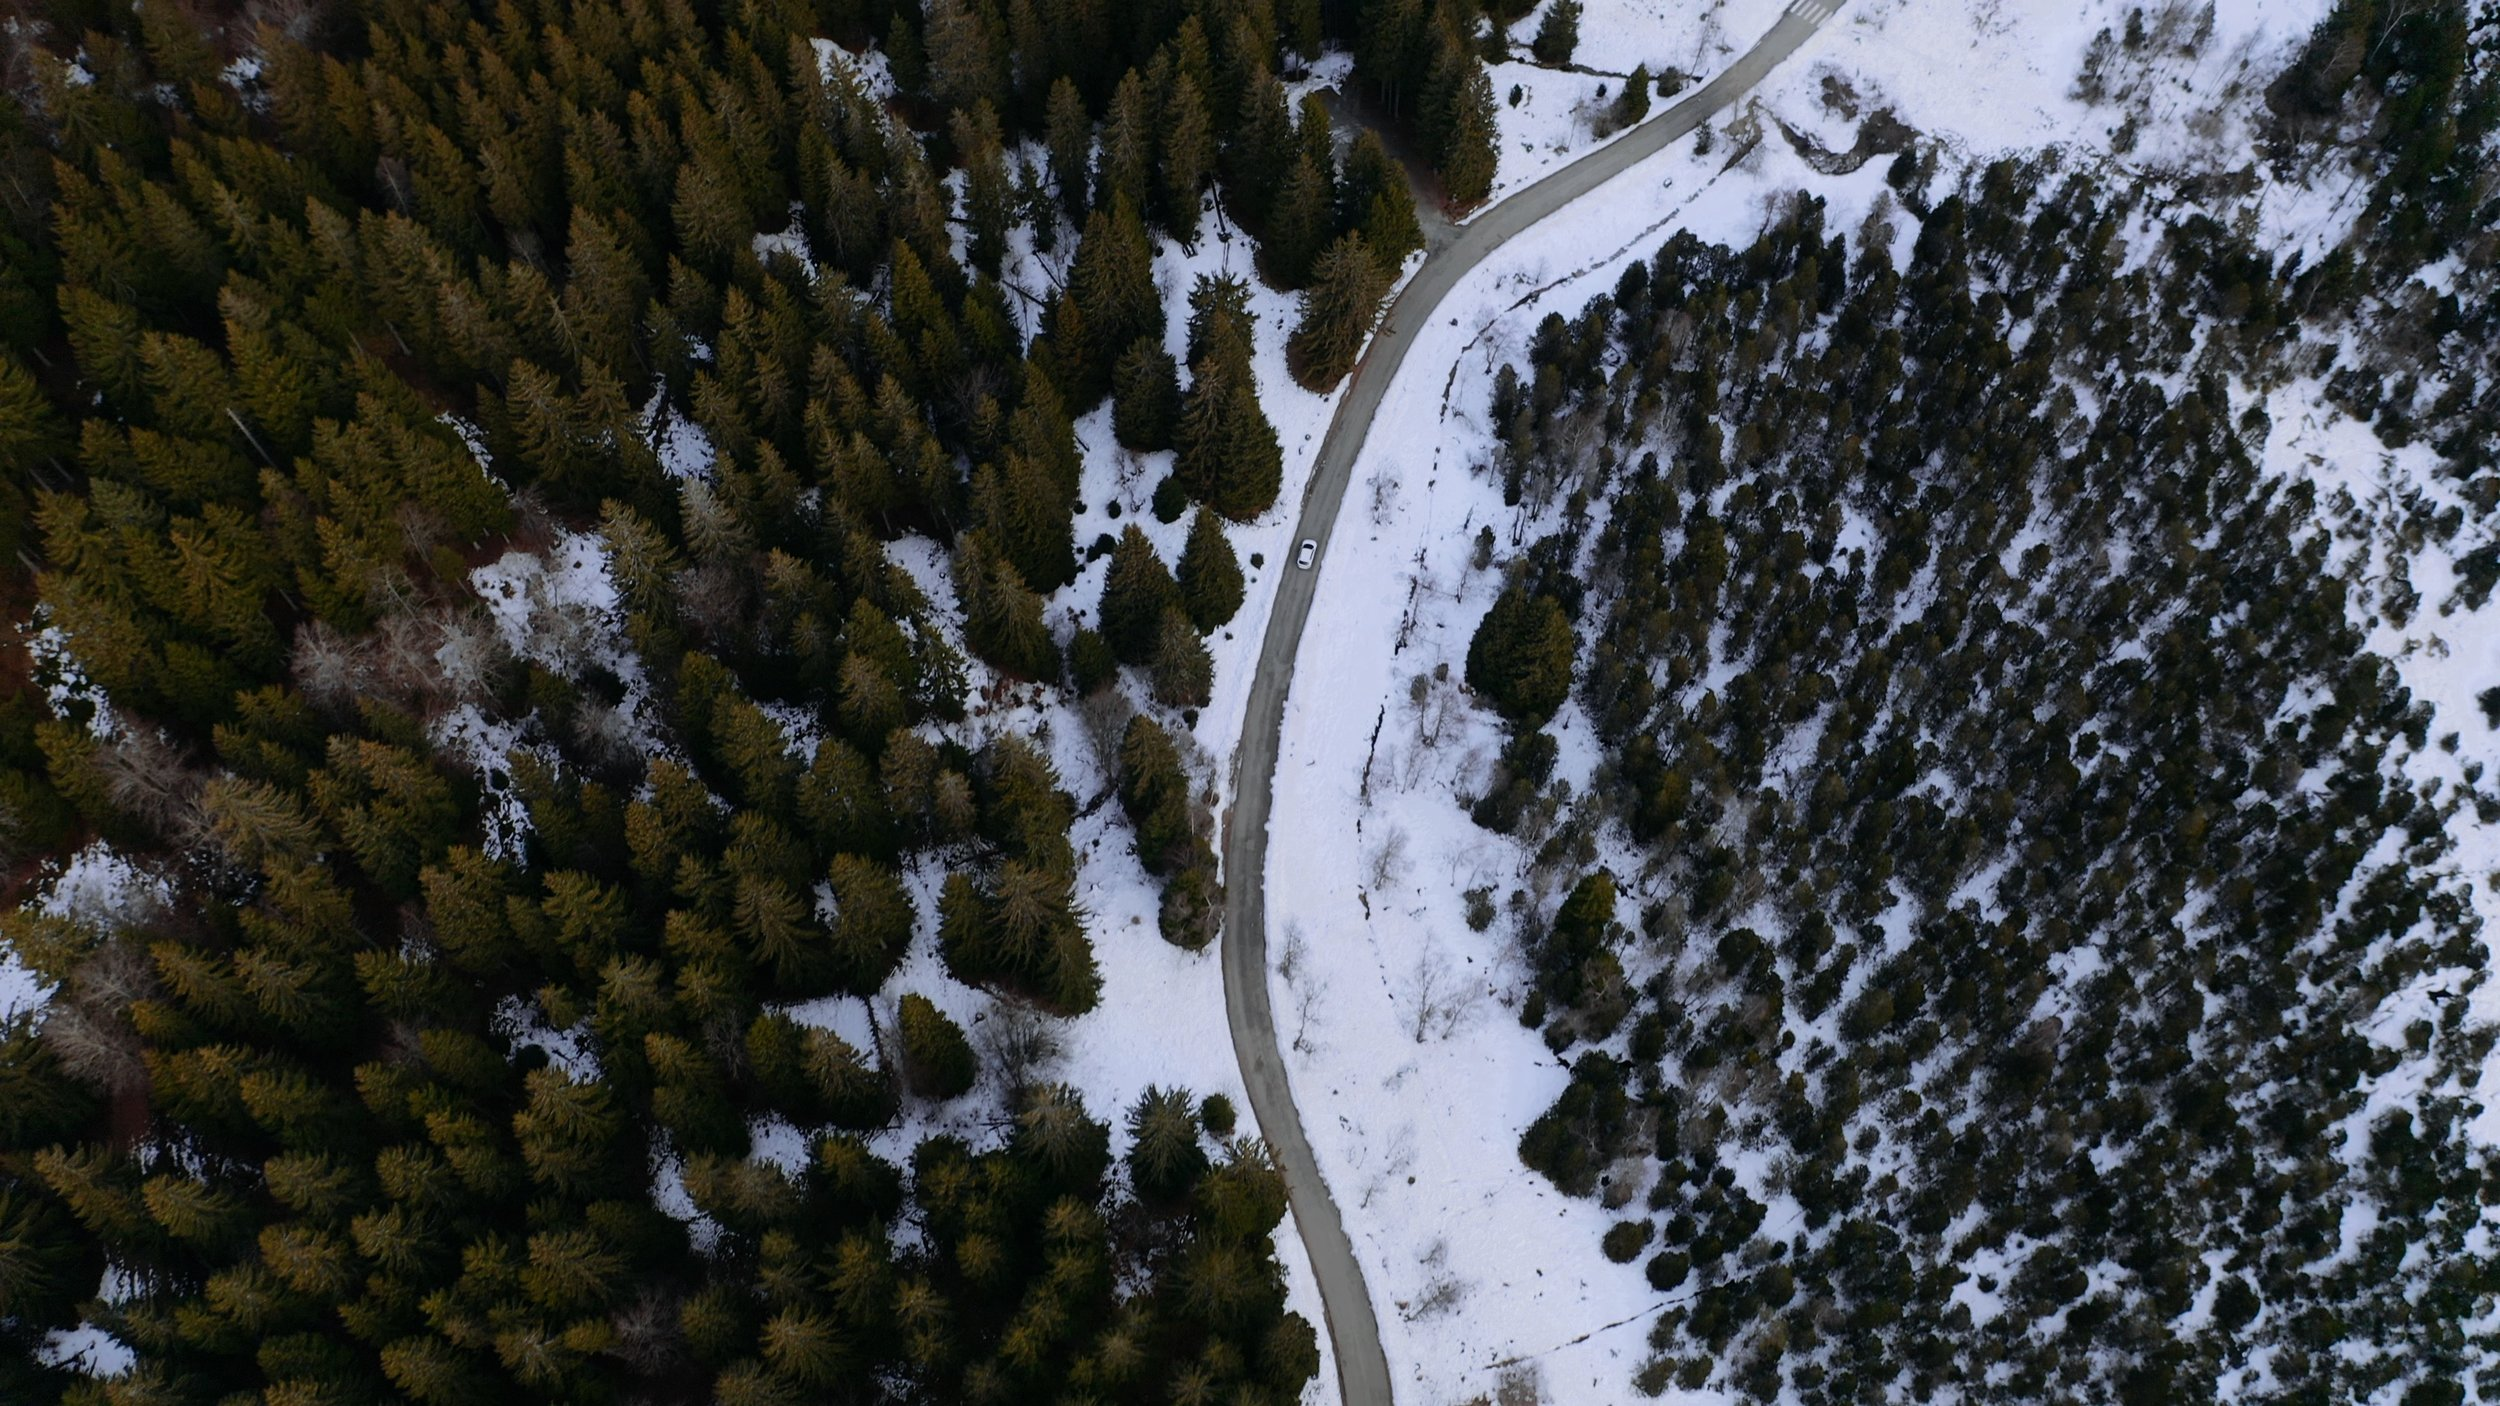 Drone Epic Mountain Roads - Of Two Lands - Frame 2.jpg